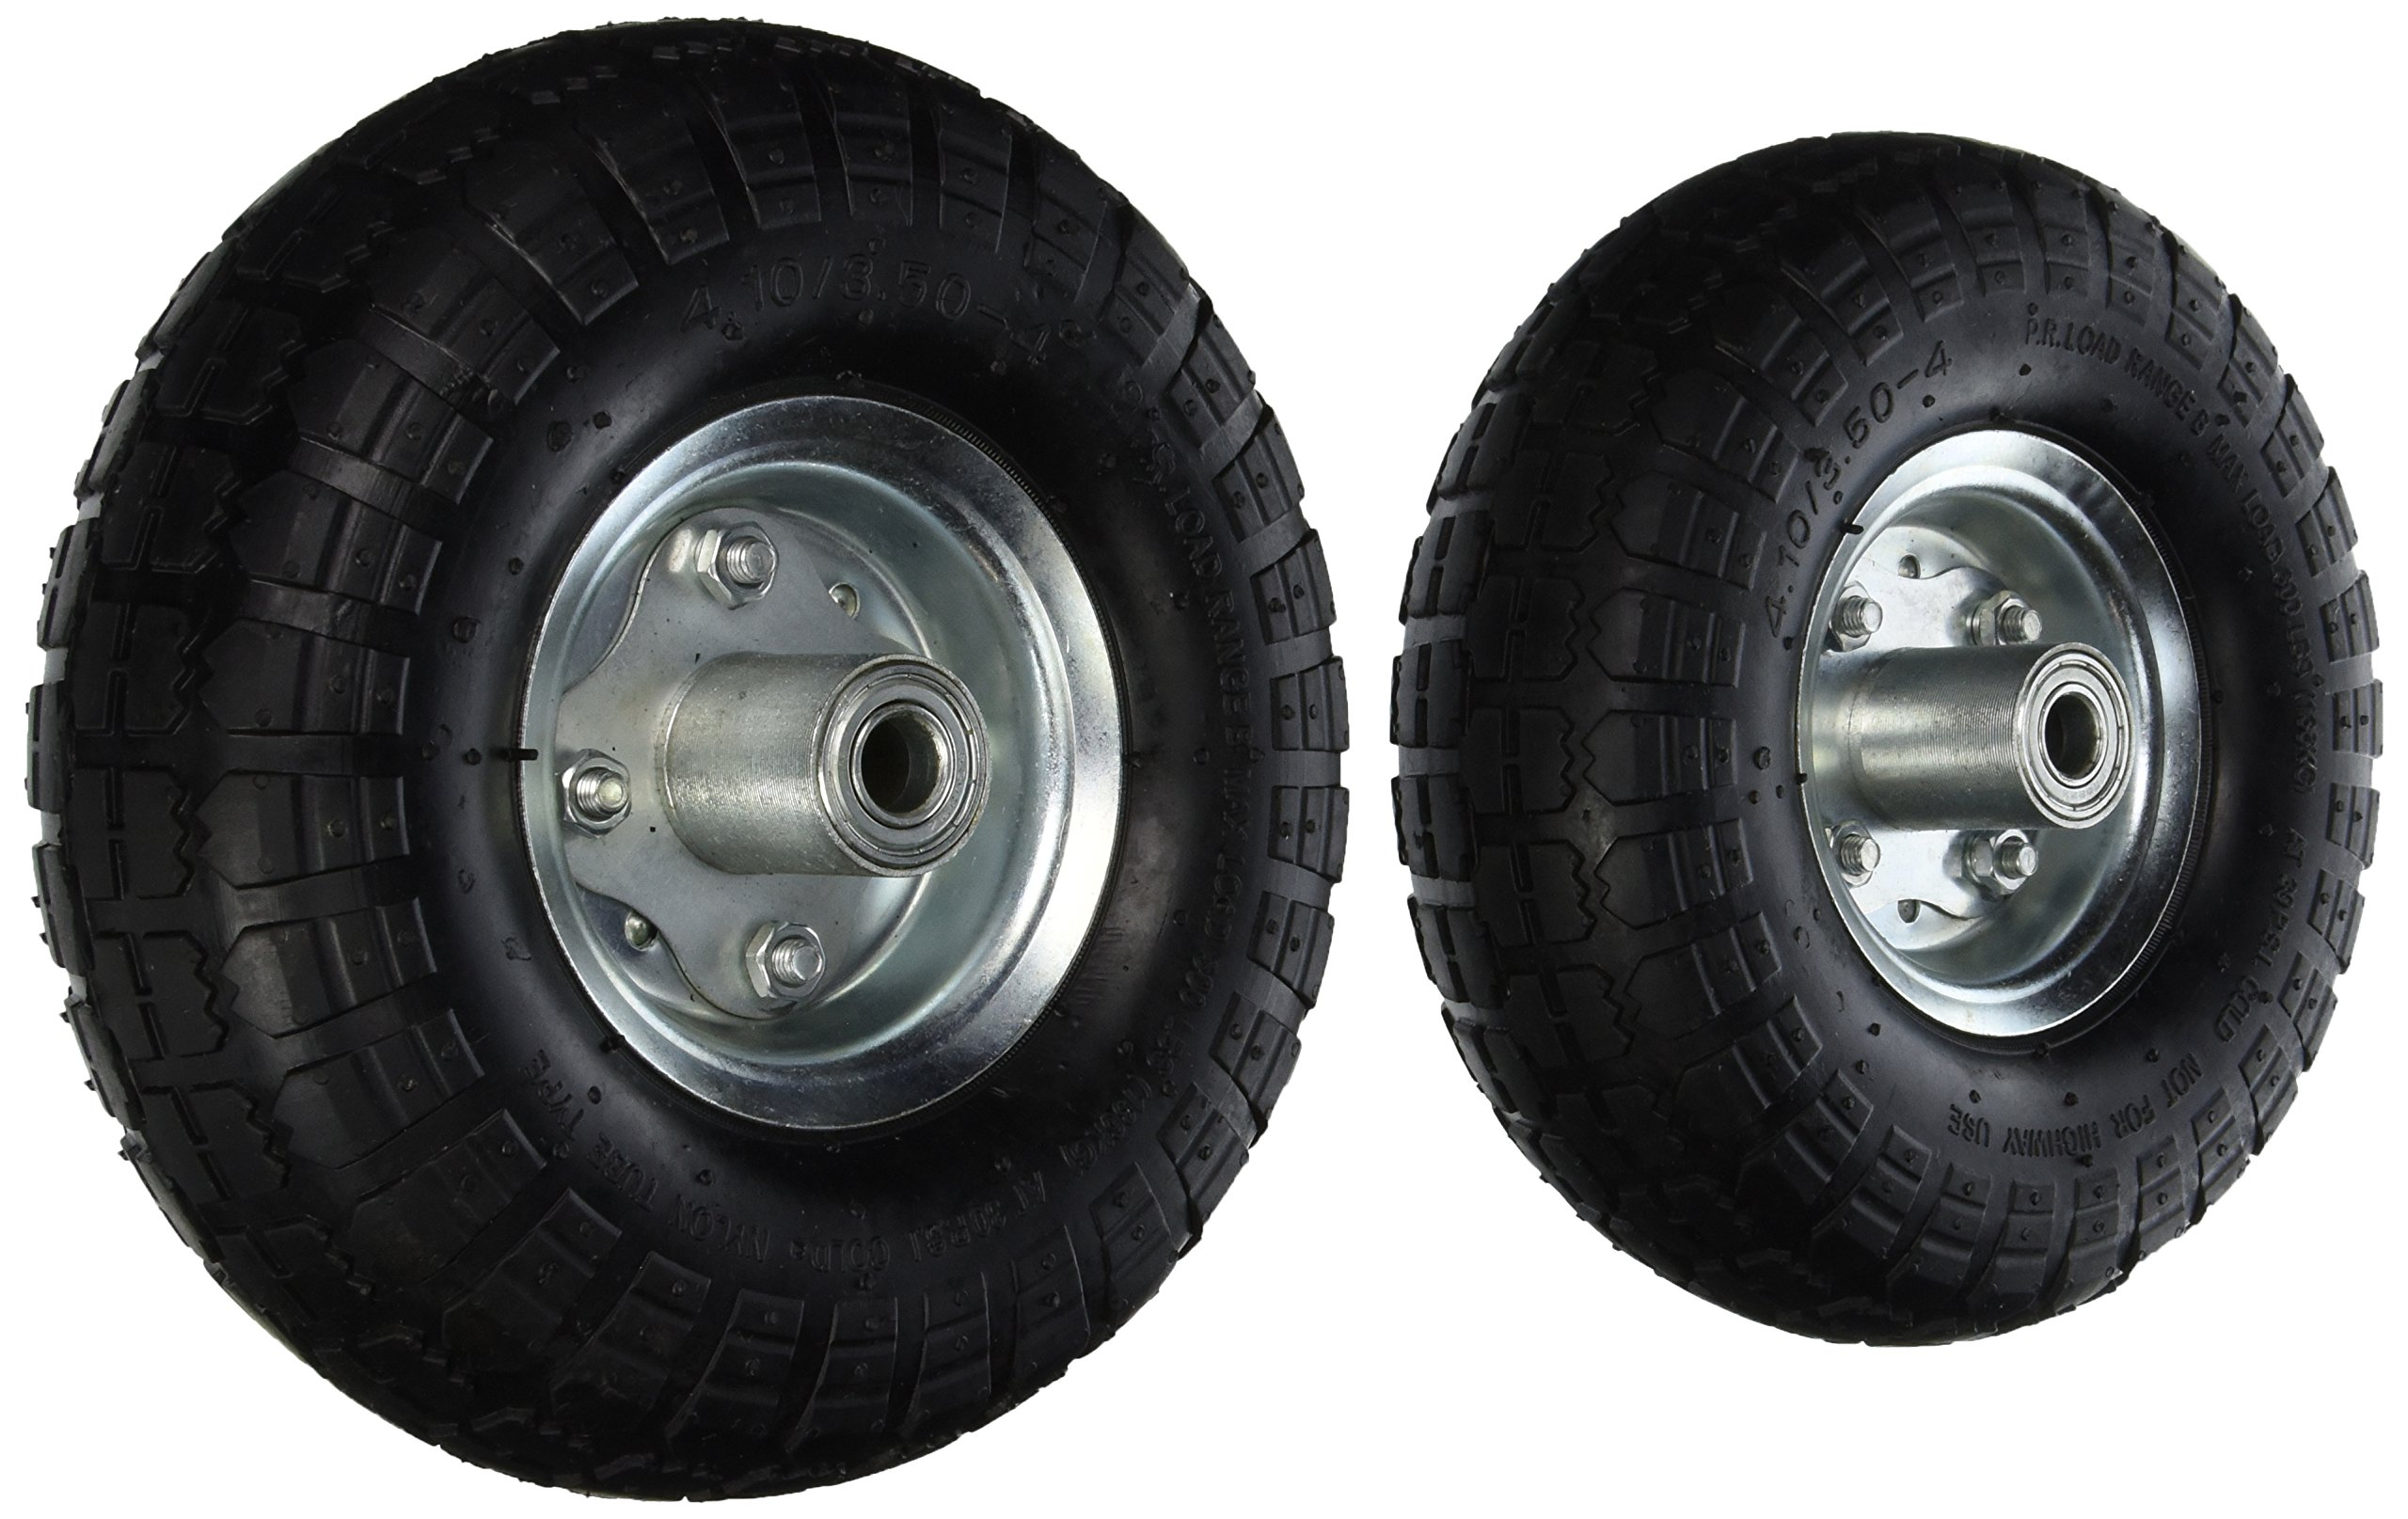 Pit Bull CHIT00122 NEW 10'' AIR Tires Wheels 5/8'' by Pit Bull (Image #1)